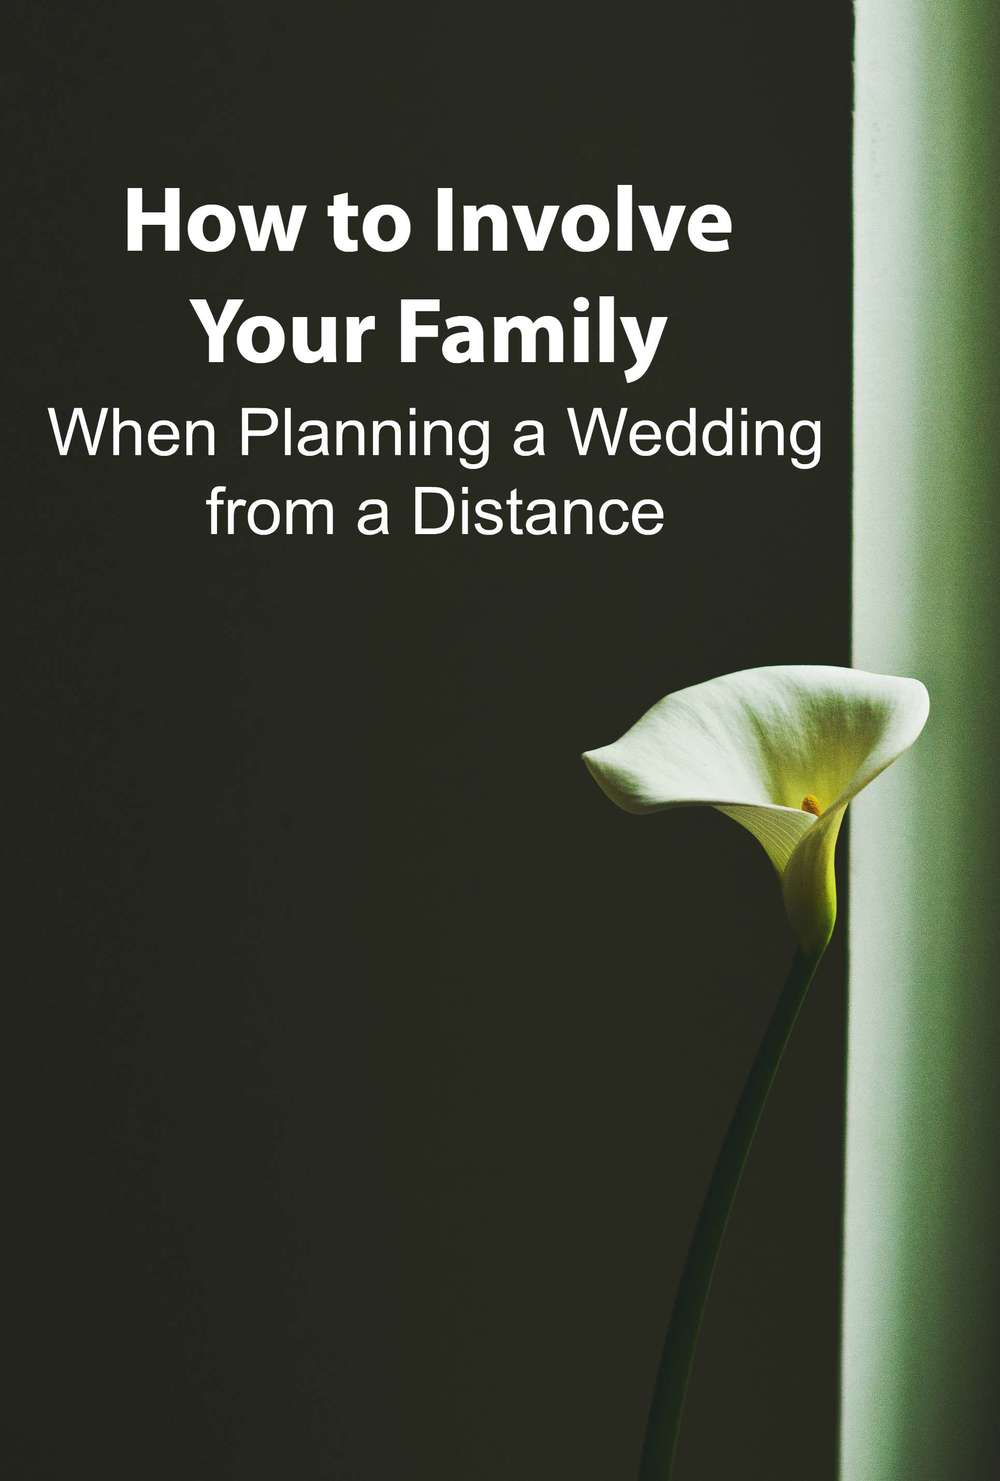 How to Involve Your Family When Planning a Wedding from a Distance - Paper Swallow Events #wedding #weddingplanning